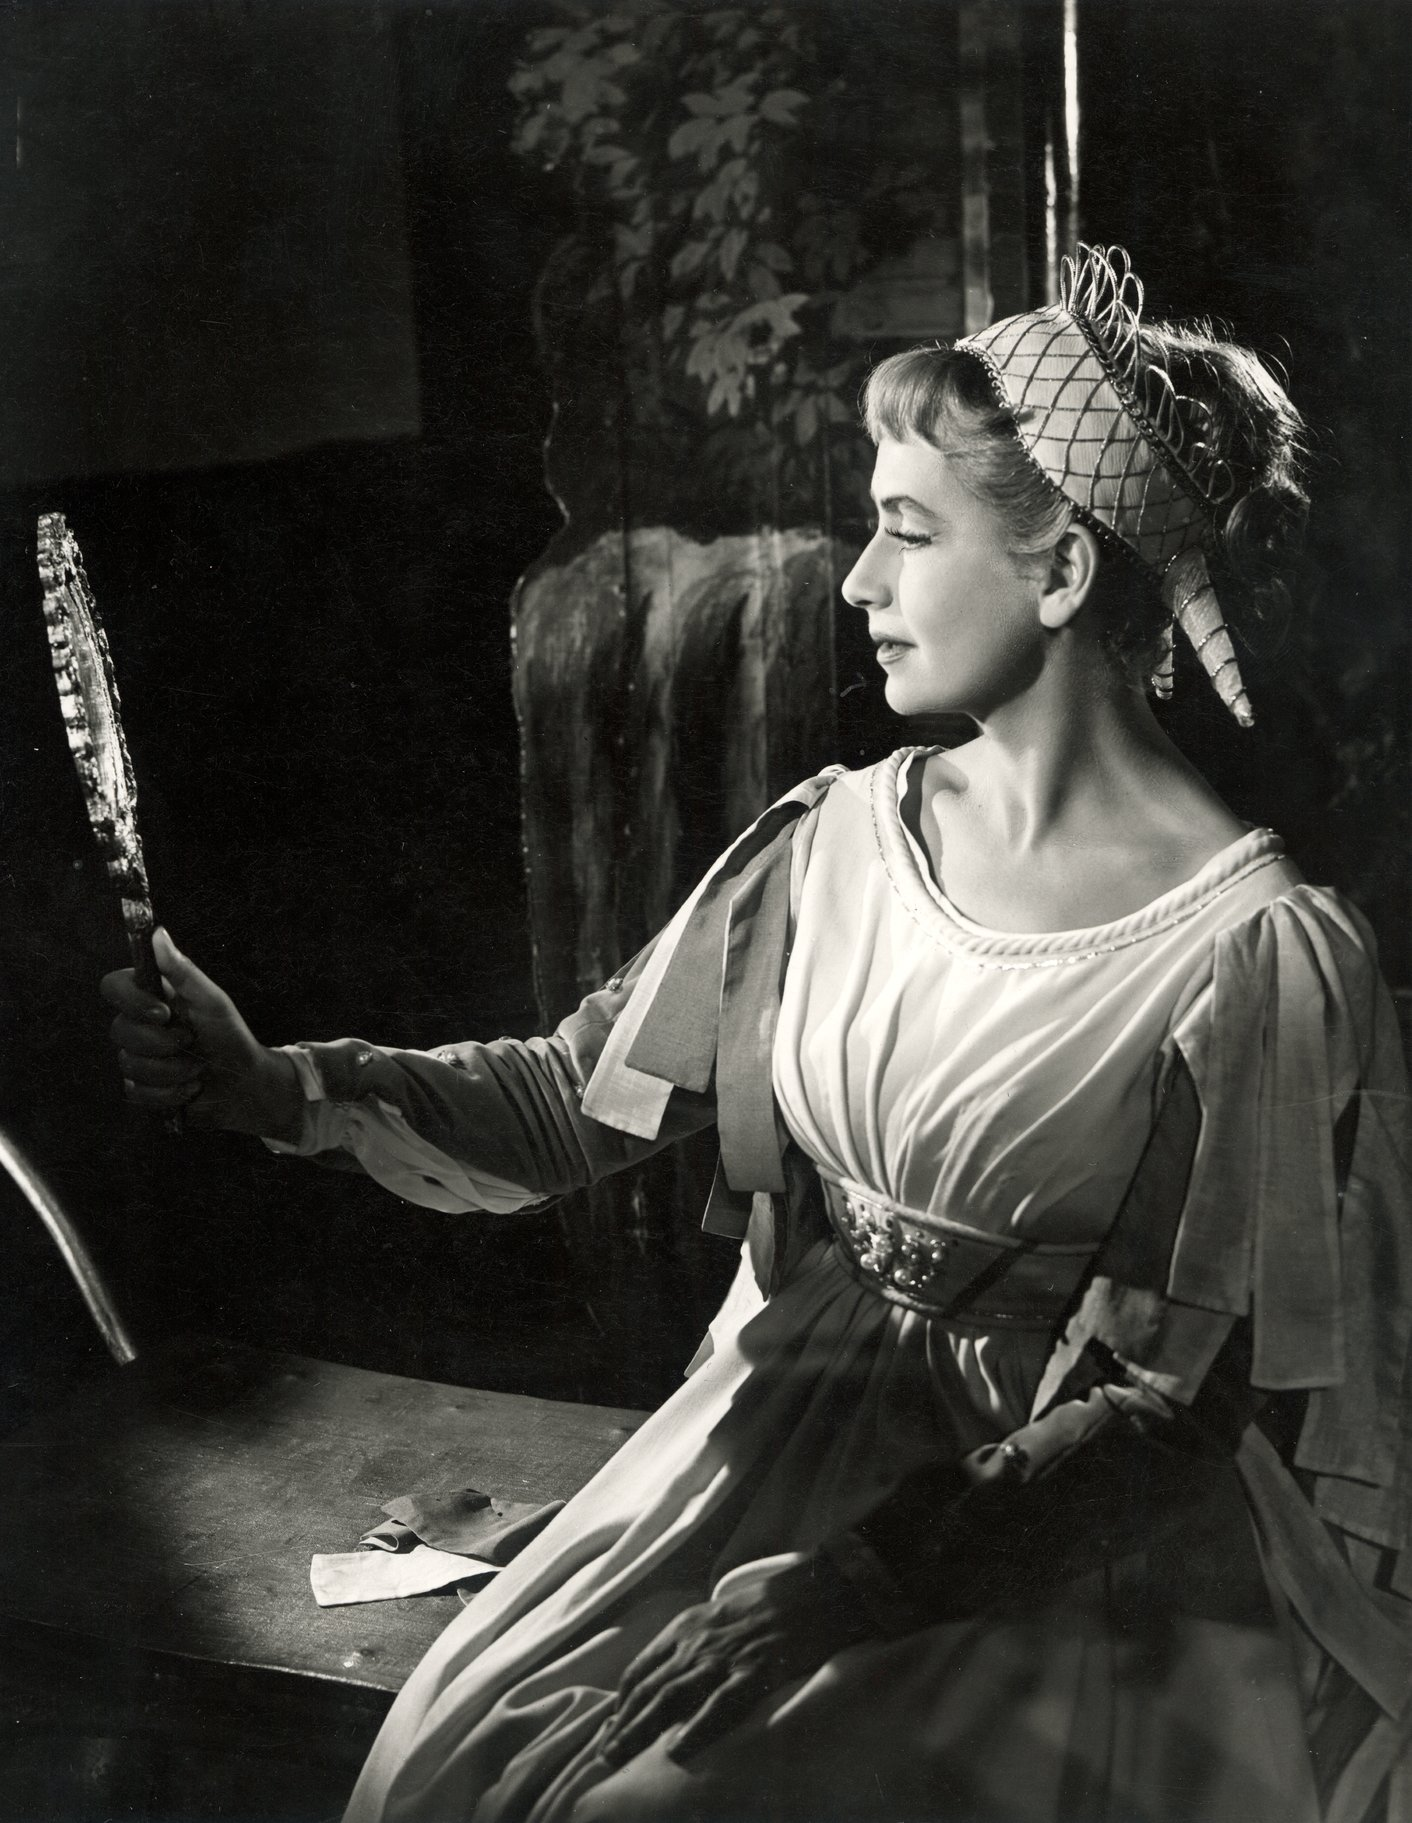 Peggy Ashcroft as Beatrice, looking at herself in a hand mirror.